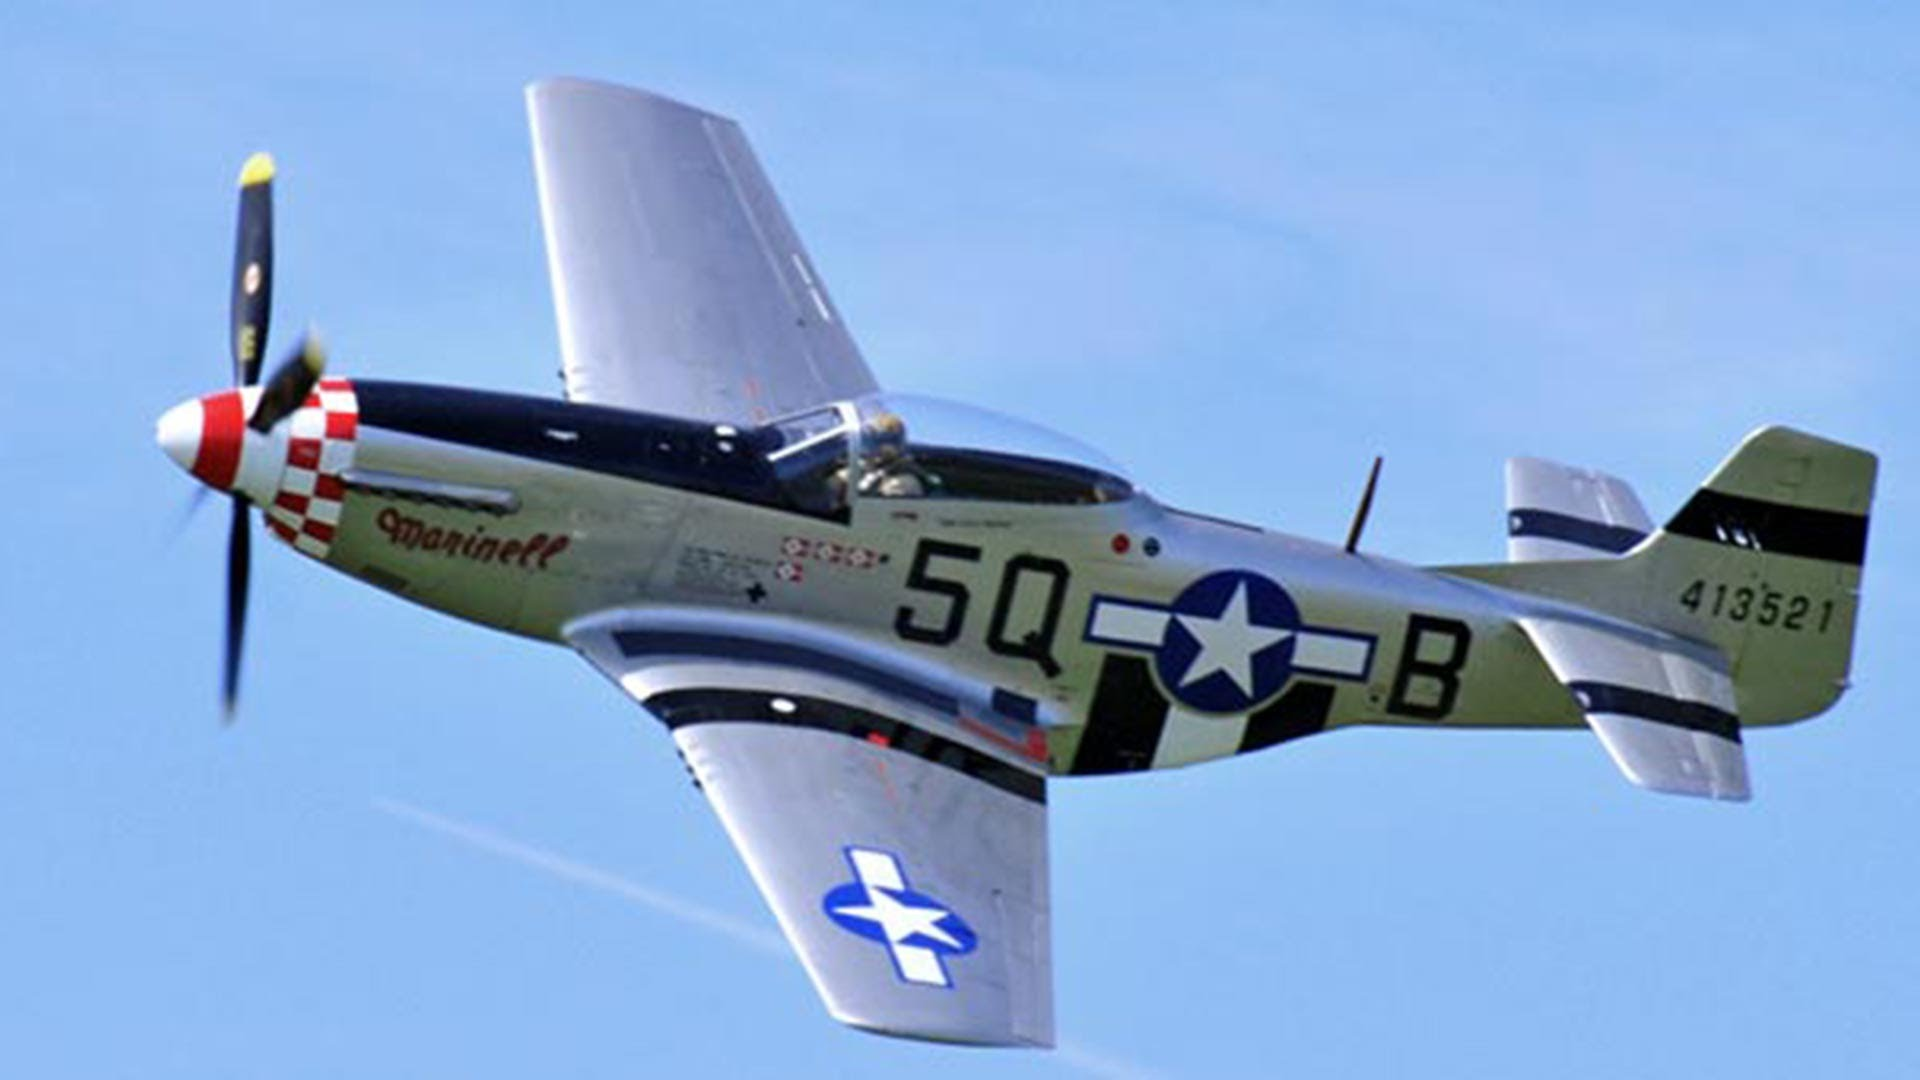 North american p-51 mustang — википедия. что такое north american p-51 mustang